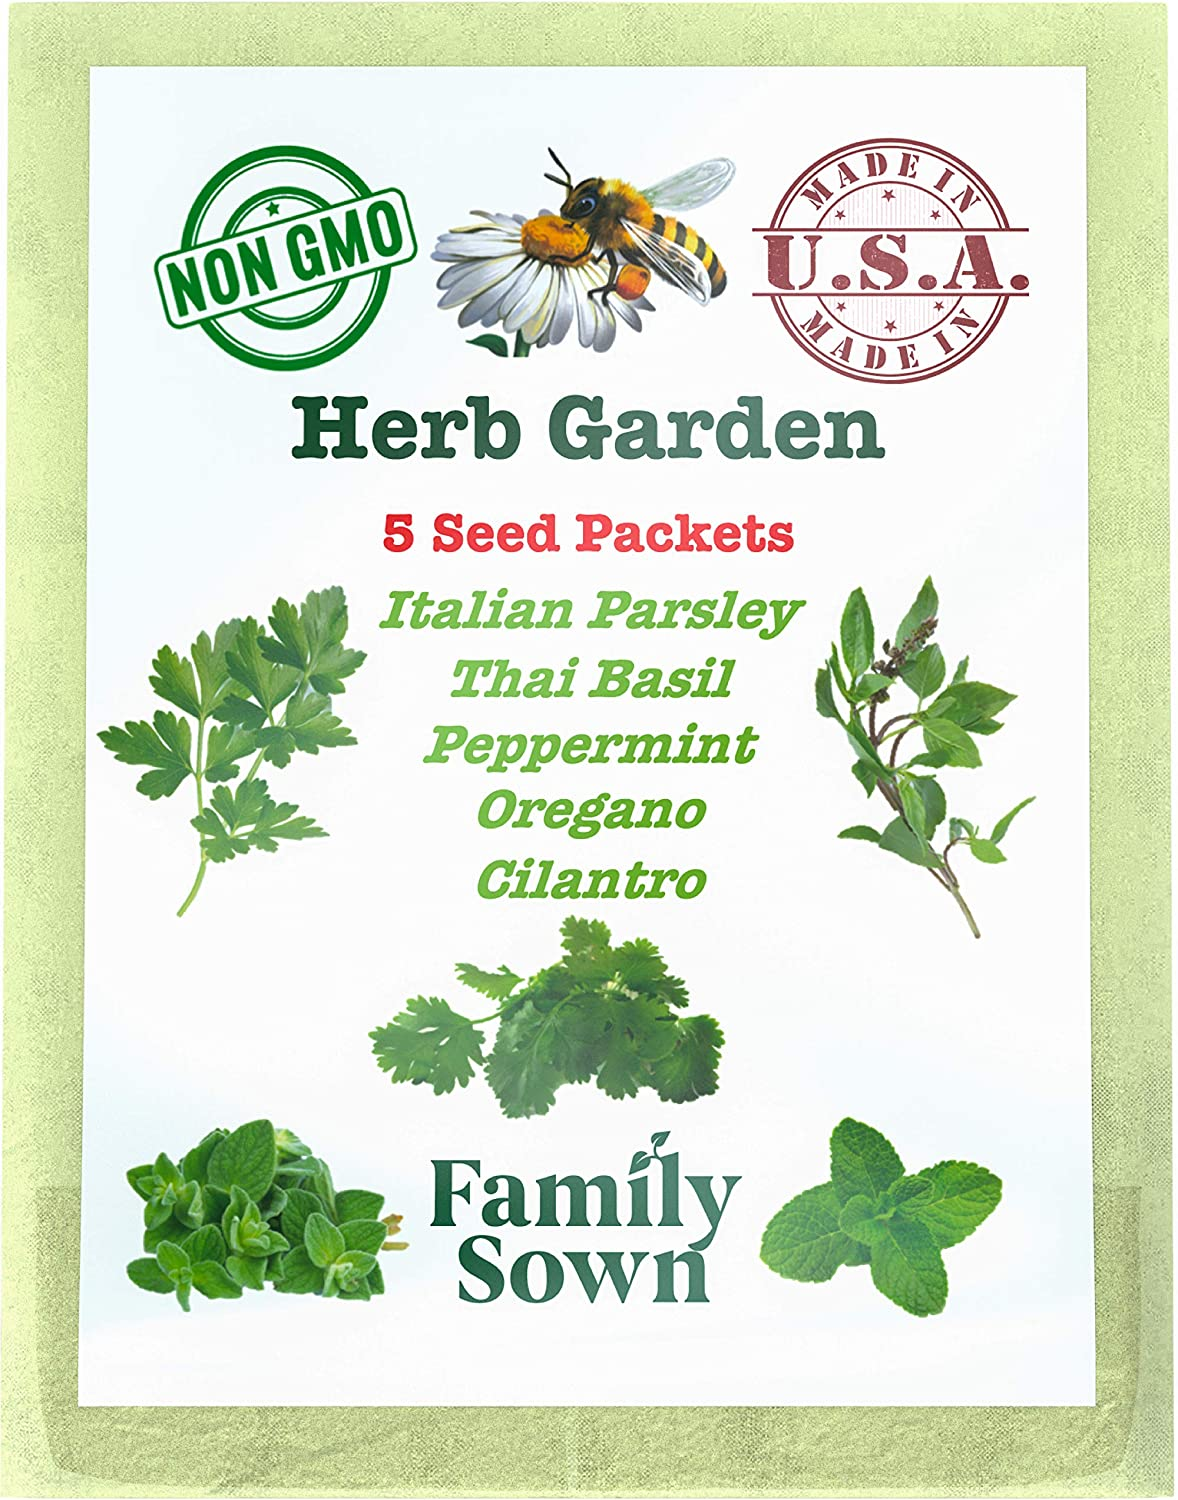 Herb Garden Seeds Variety Pack for Planting Indoor and/or Outdoor herb Gardens. Parsley Seeds, Cilantro Seeds, Peppermint Seeds, Basil Seeds and Oregano Seeds. Herb Seed Set for Kitchen herb Gardens